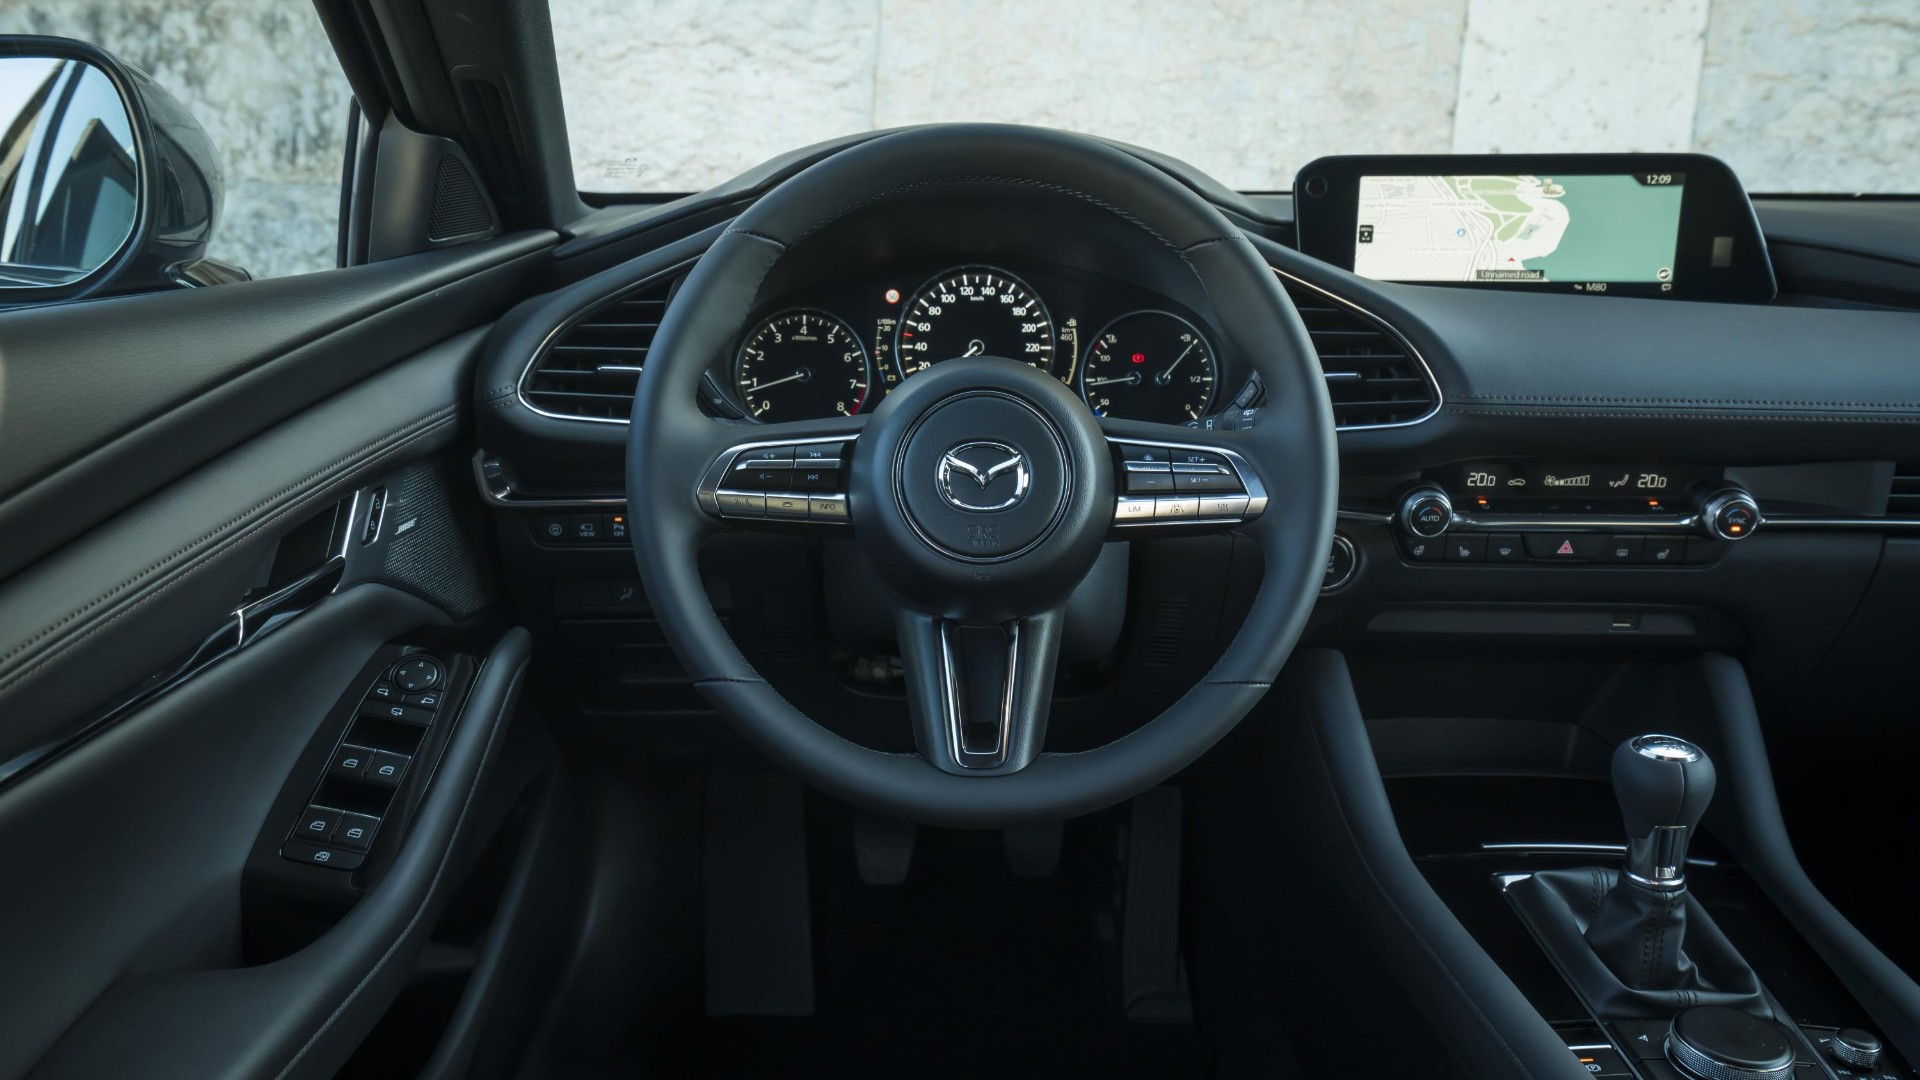 Mazda is getting rid of touchscreens on its cars